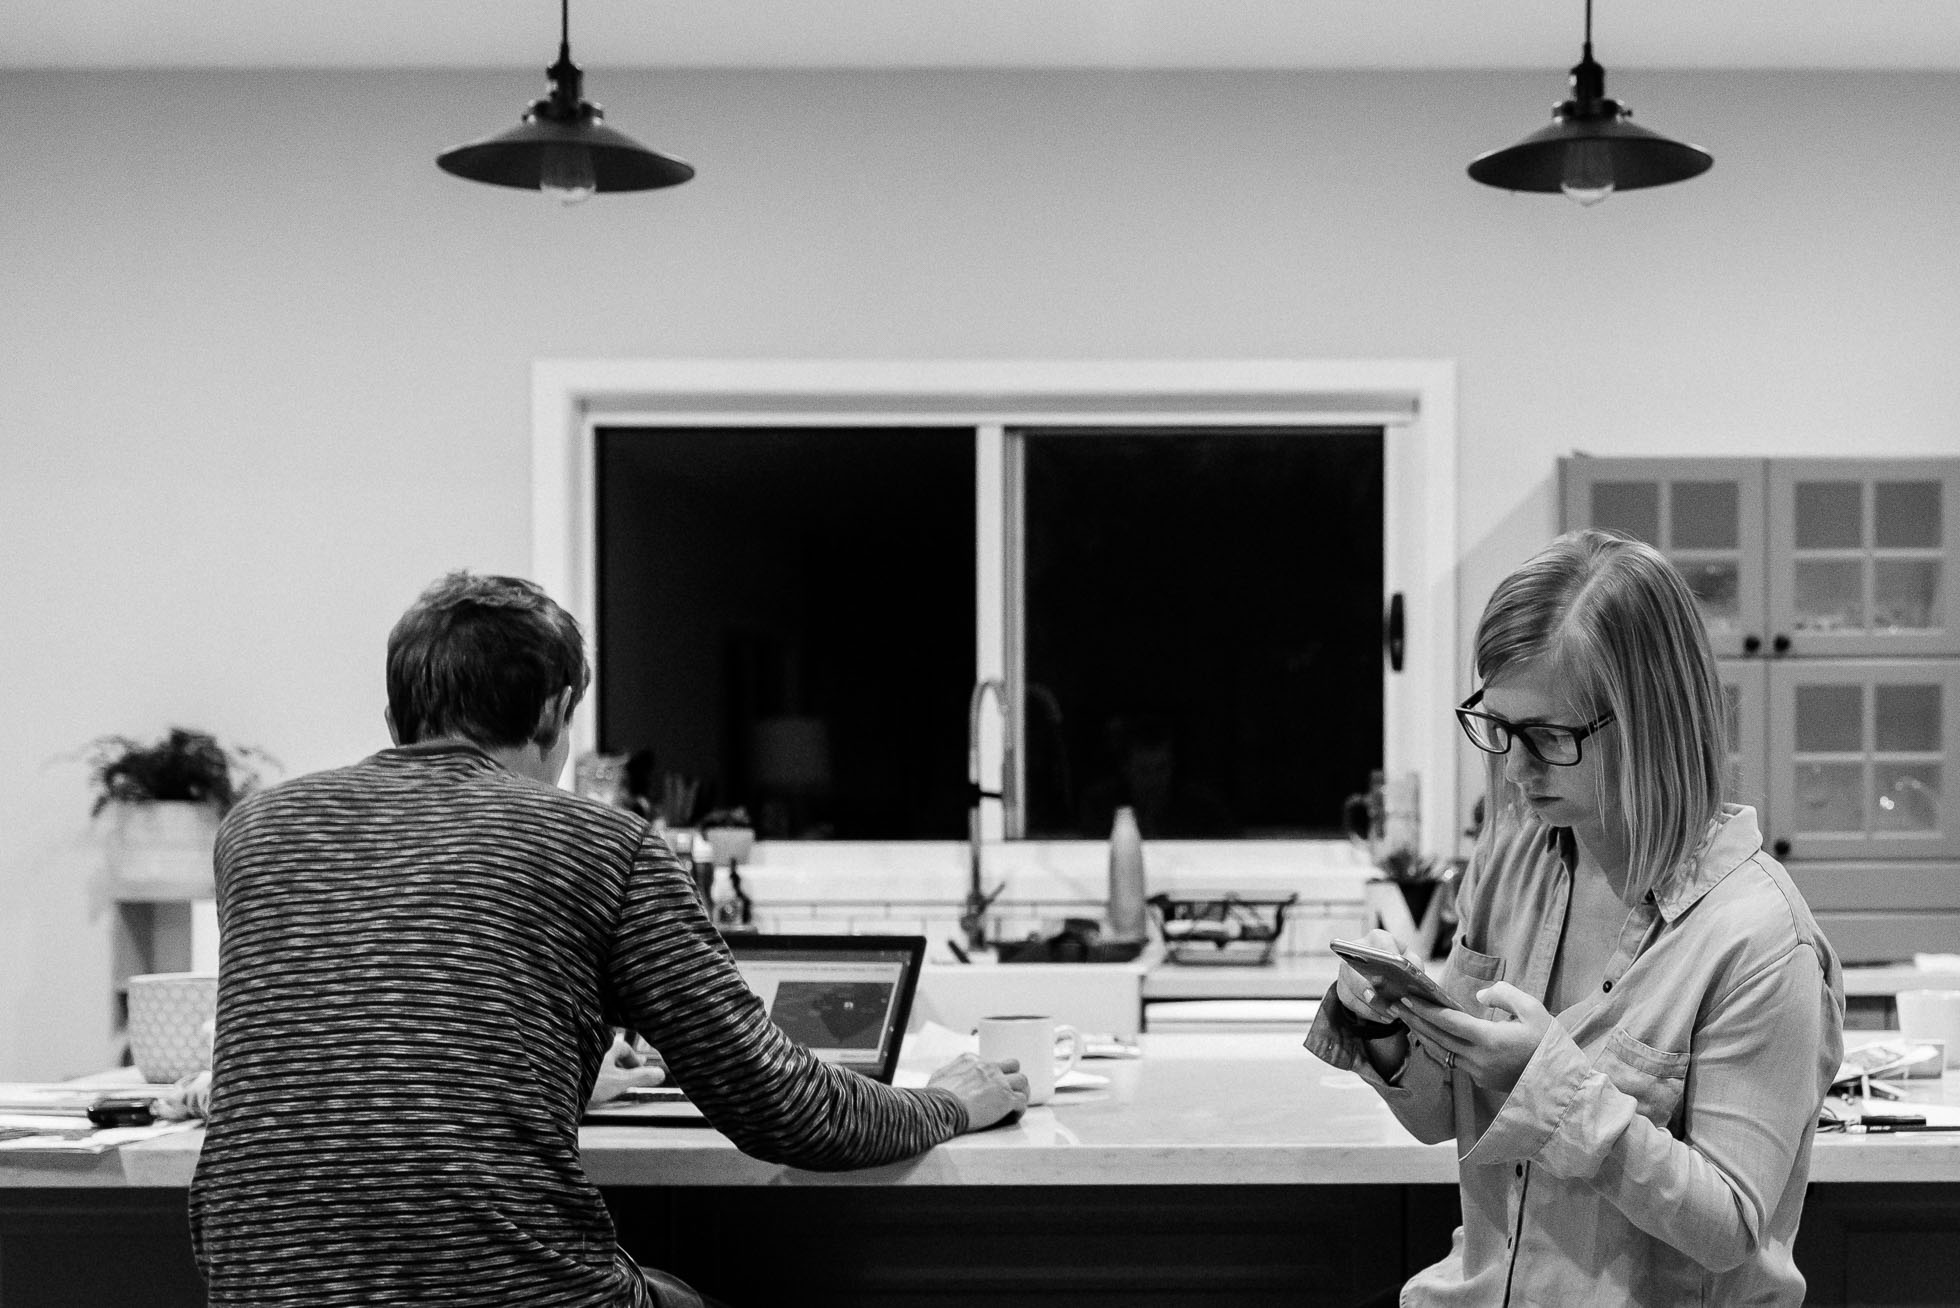 self-portrait-couple-working-together-at-counter-on-technology-black-and-white-photography.jpg